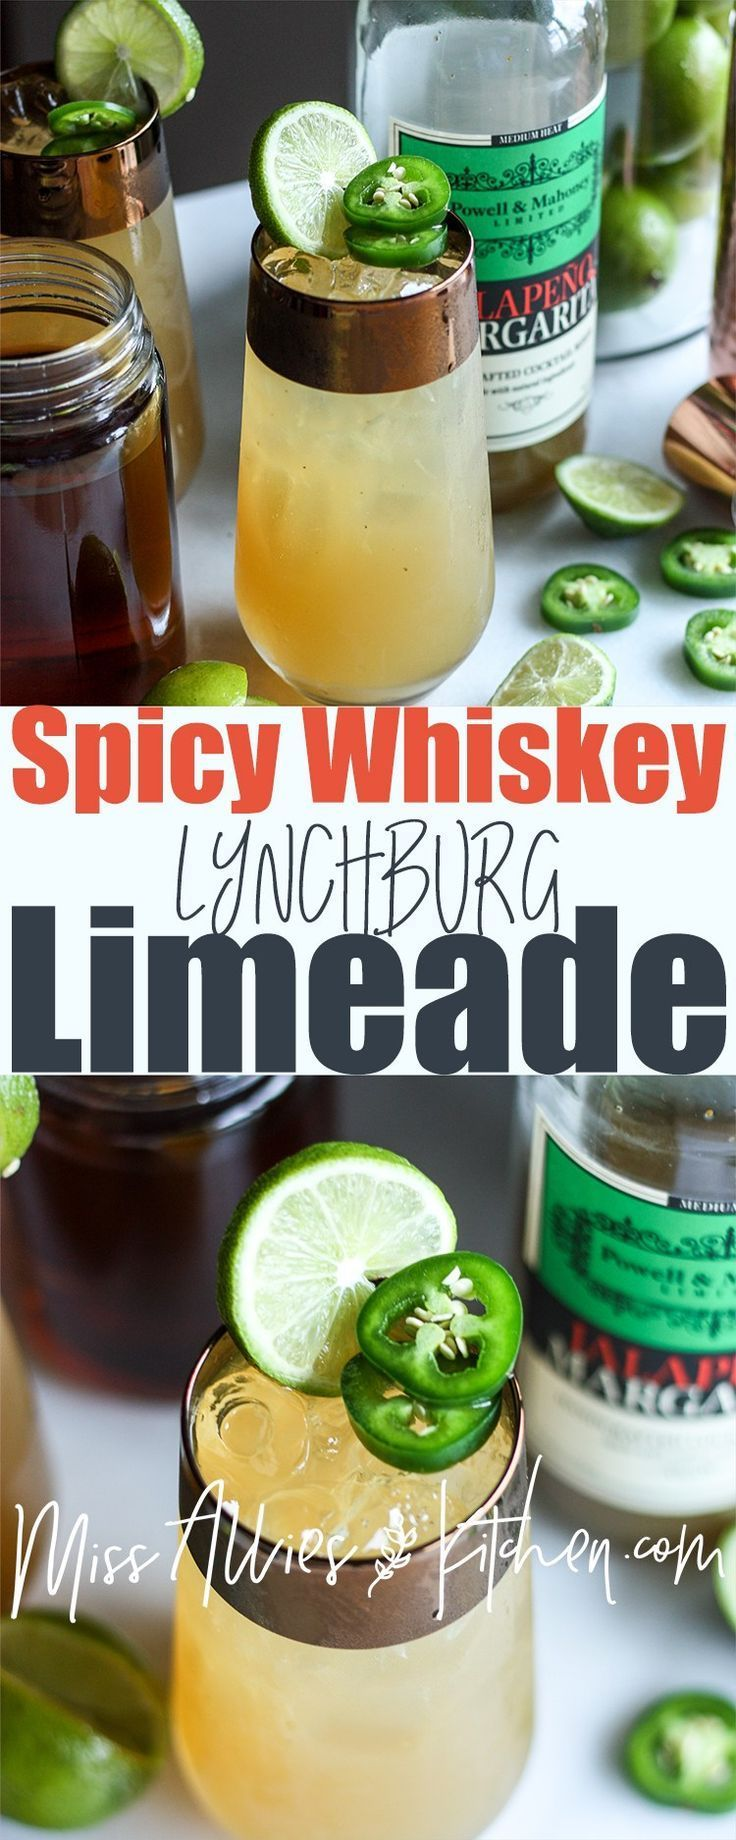 Photo of Spicy Whiskey Lynchburg Limeade – Miss Allie's Kitchen